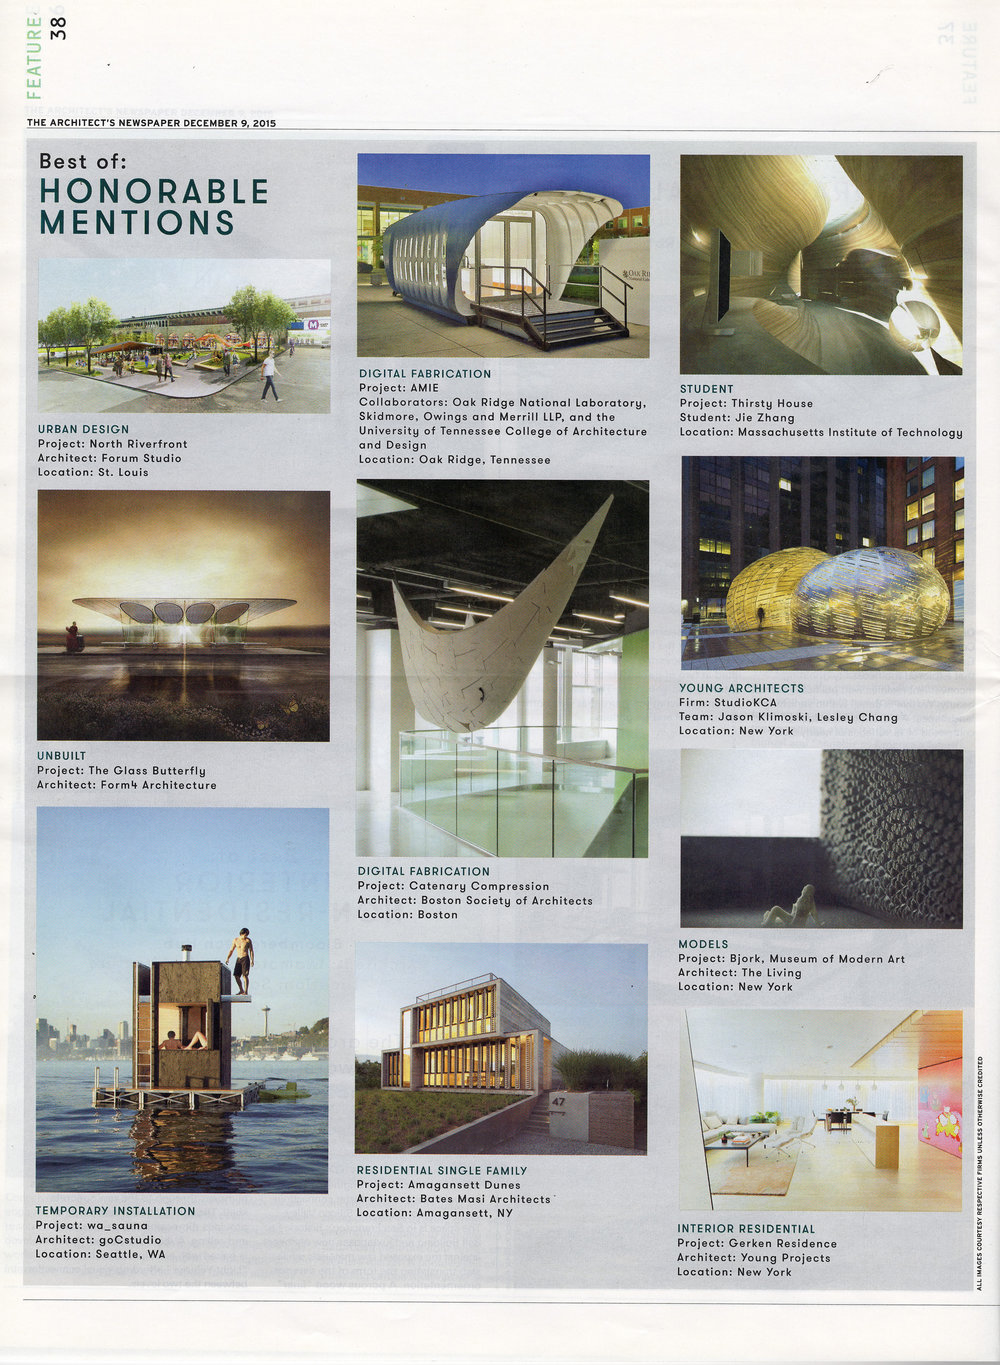 goCstudio_Architects Newspaper Spread 1.JPG